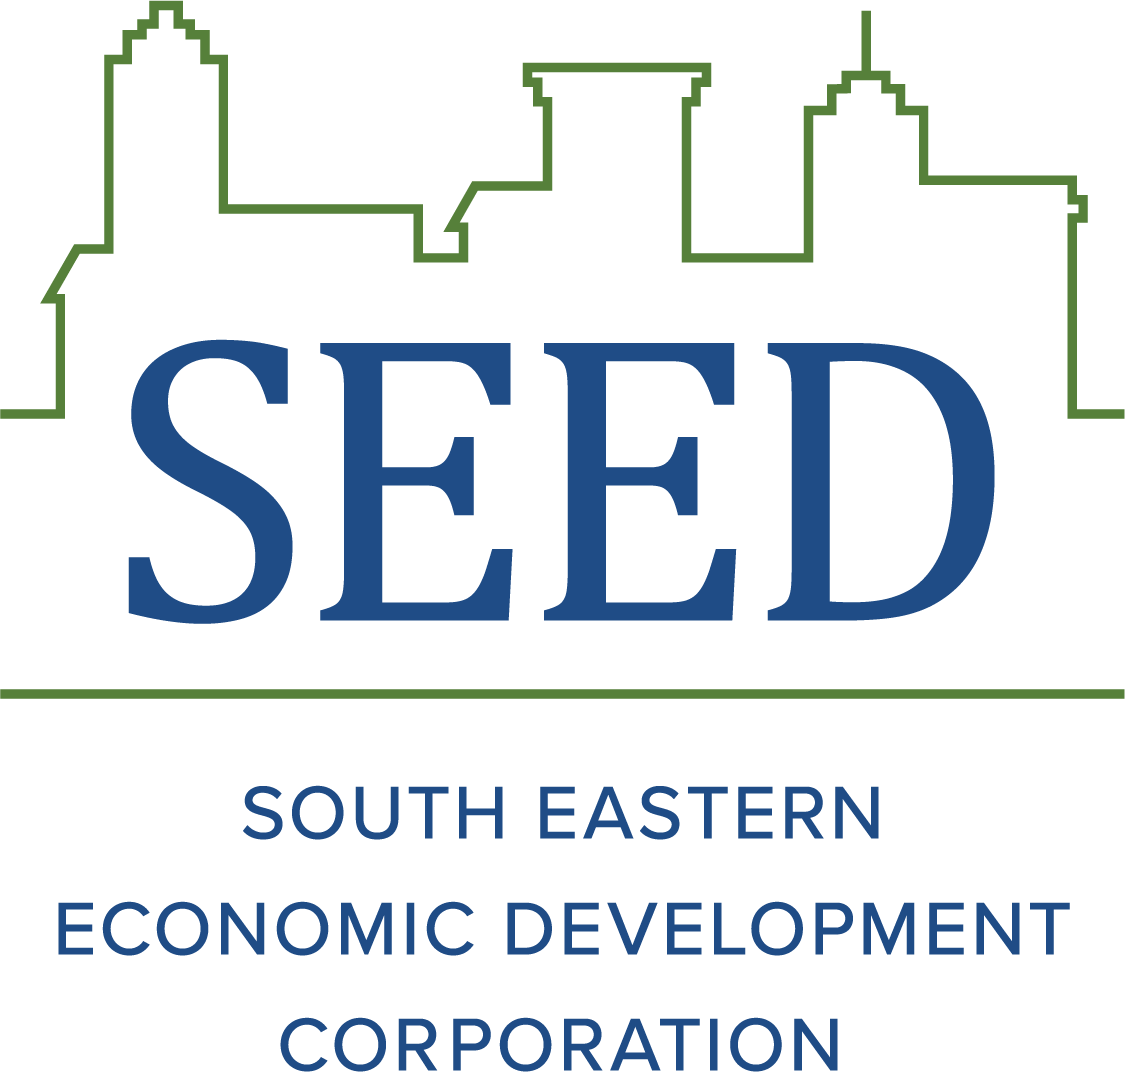 SEED (South Eastern Economic Development Corporation)